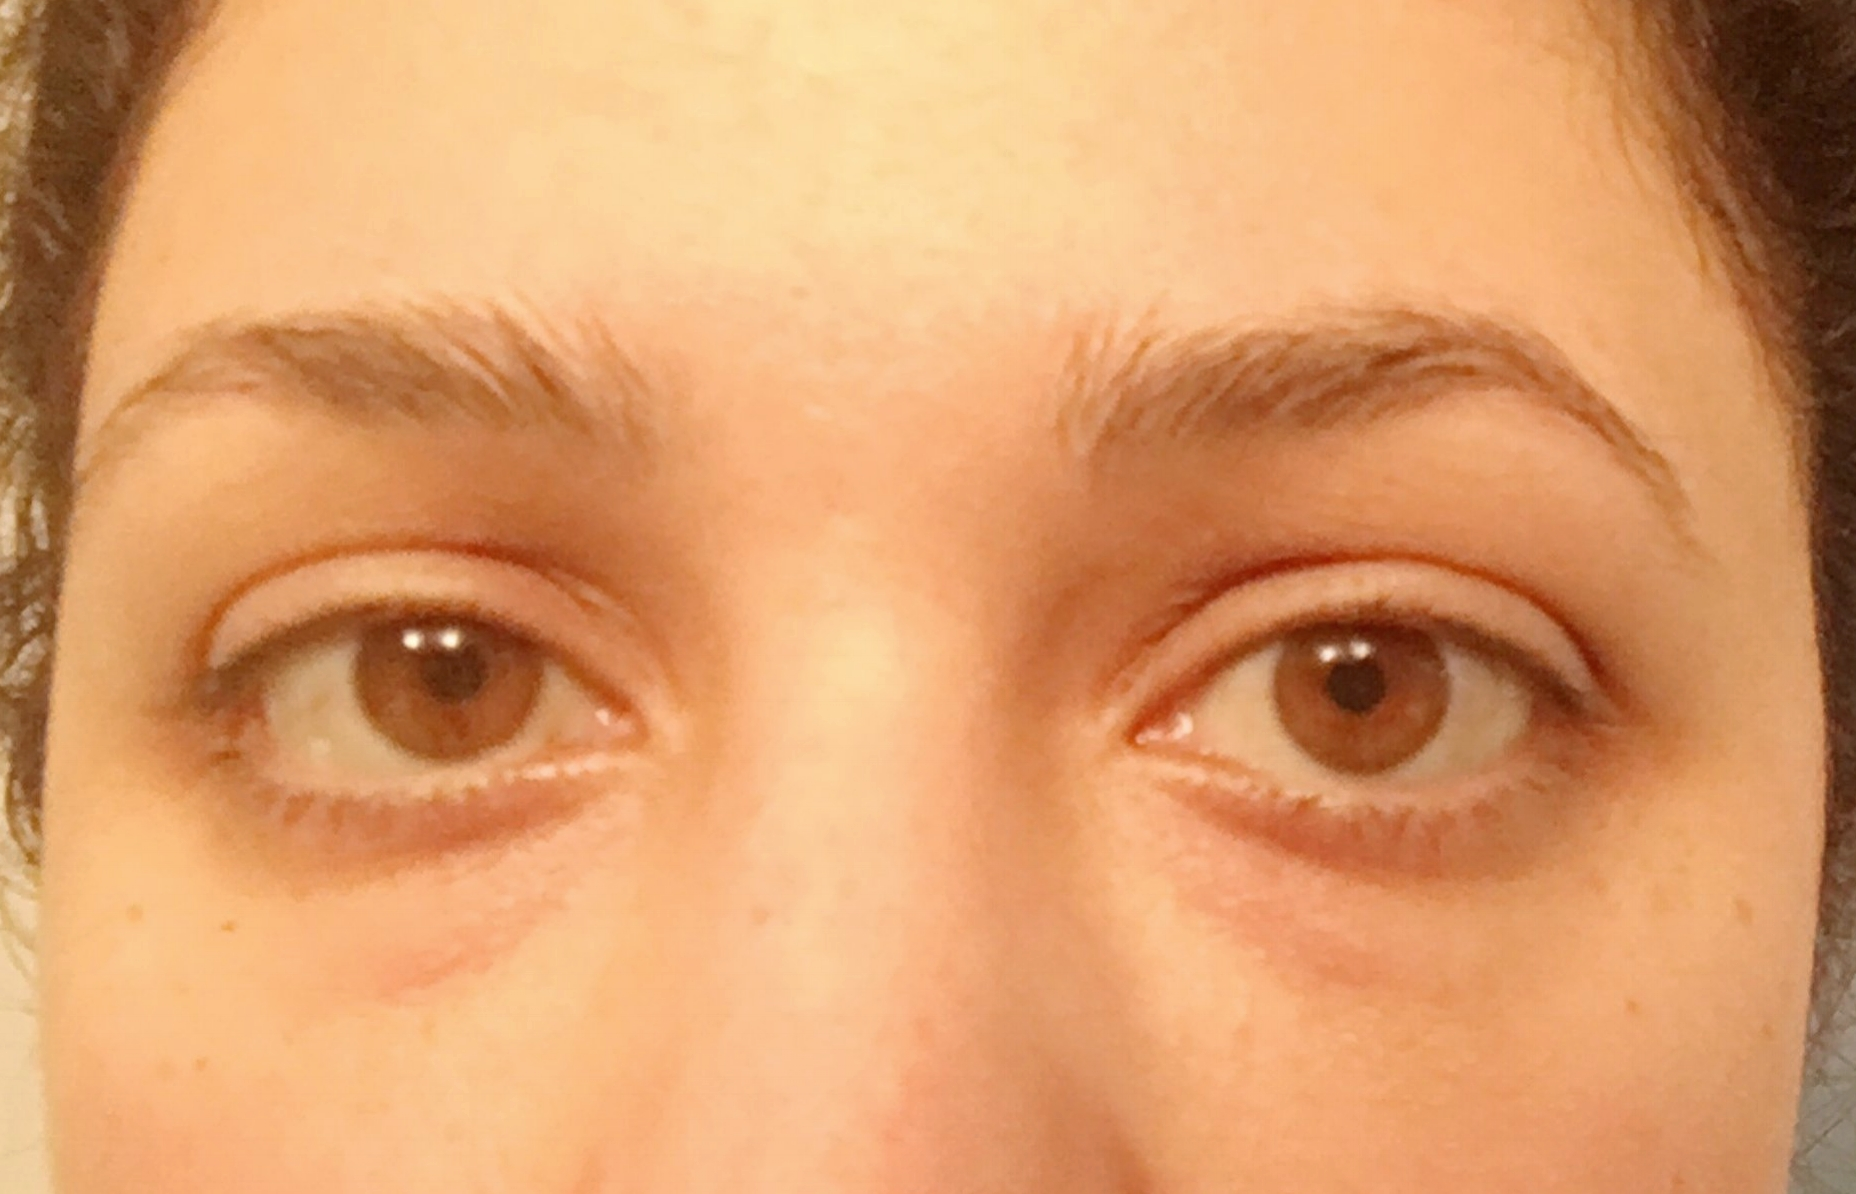 Before eyelash extensions with no makeup on.